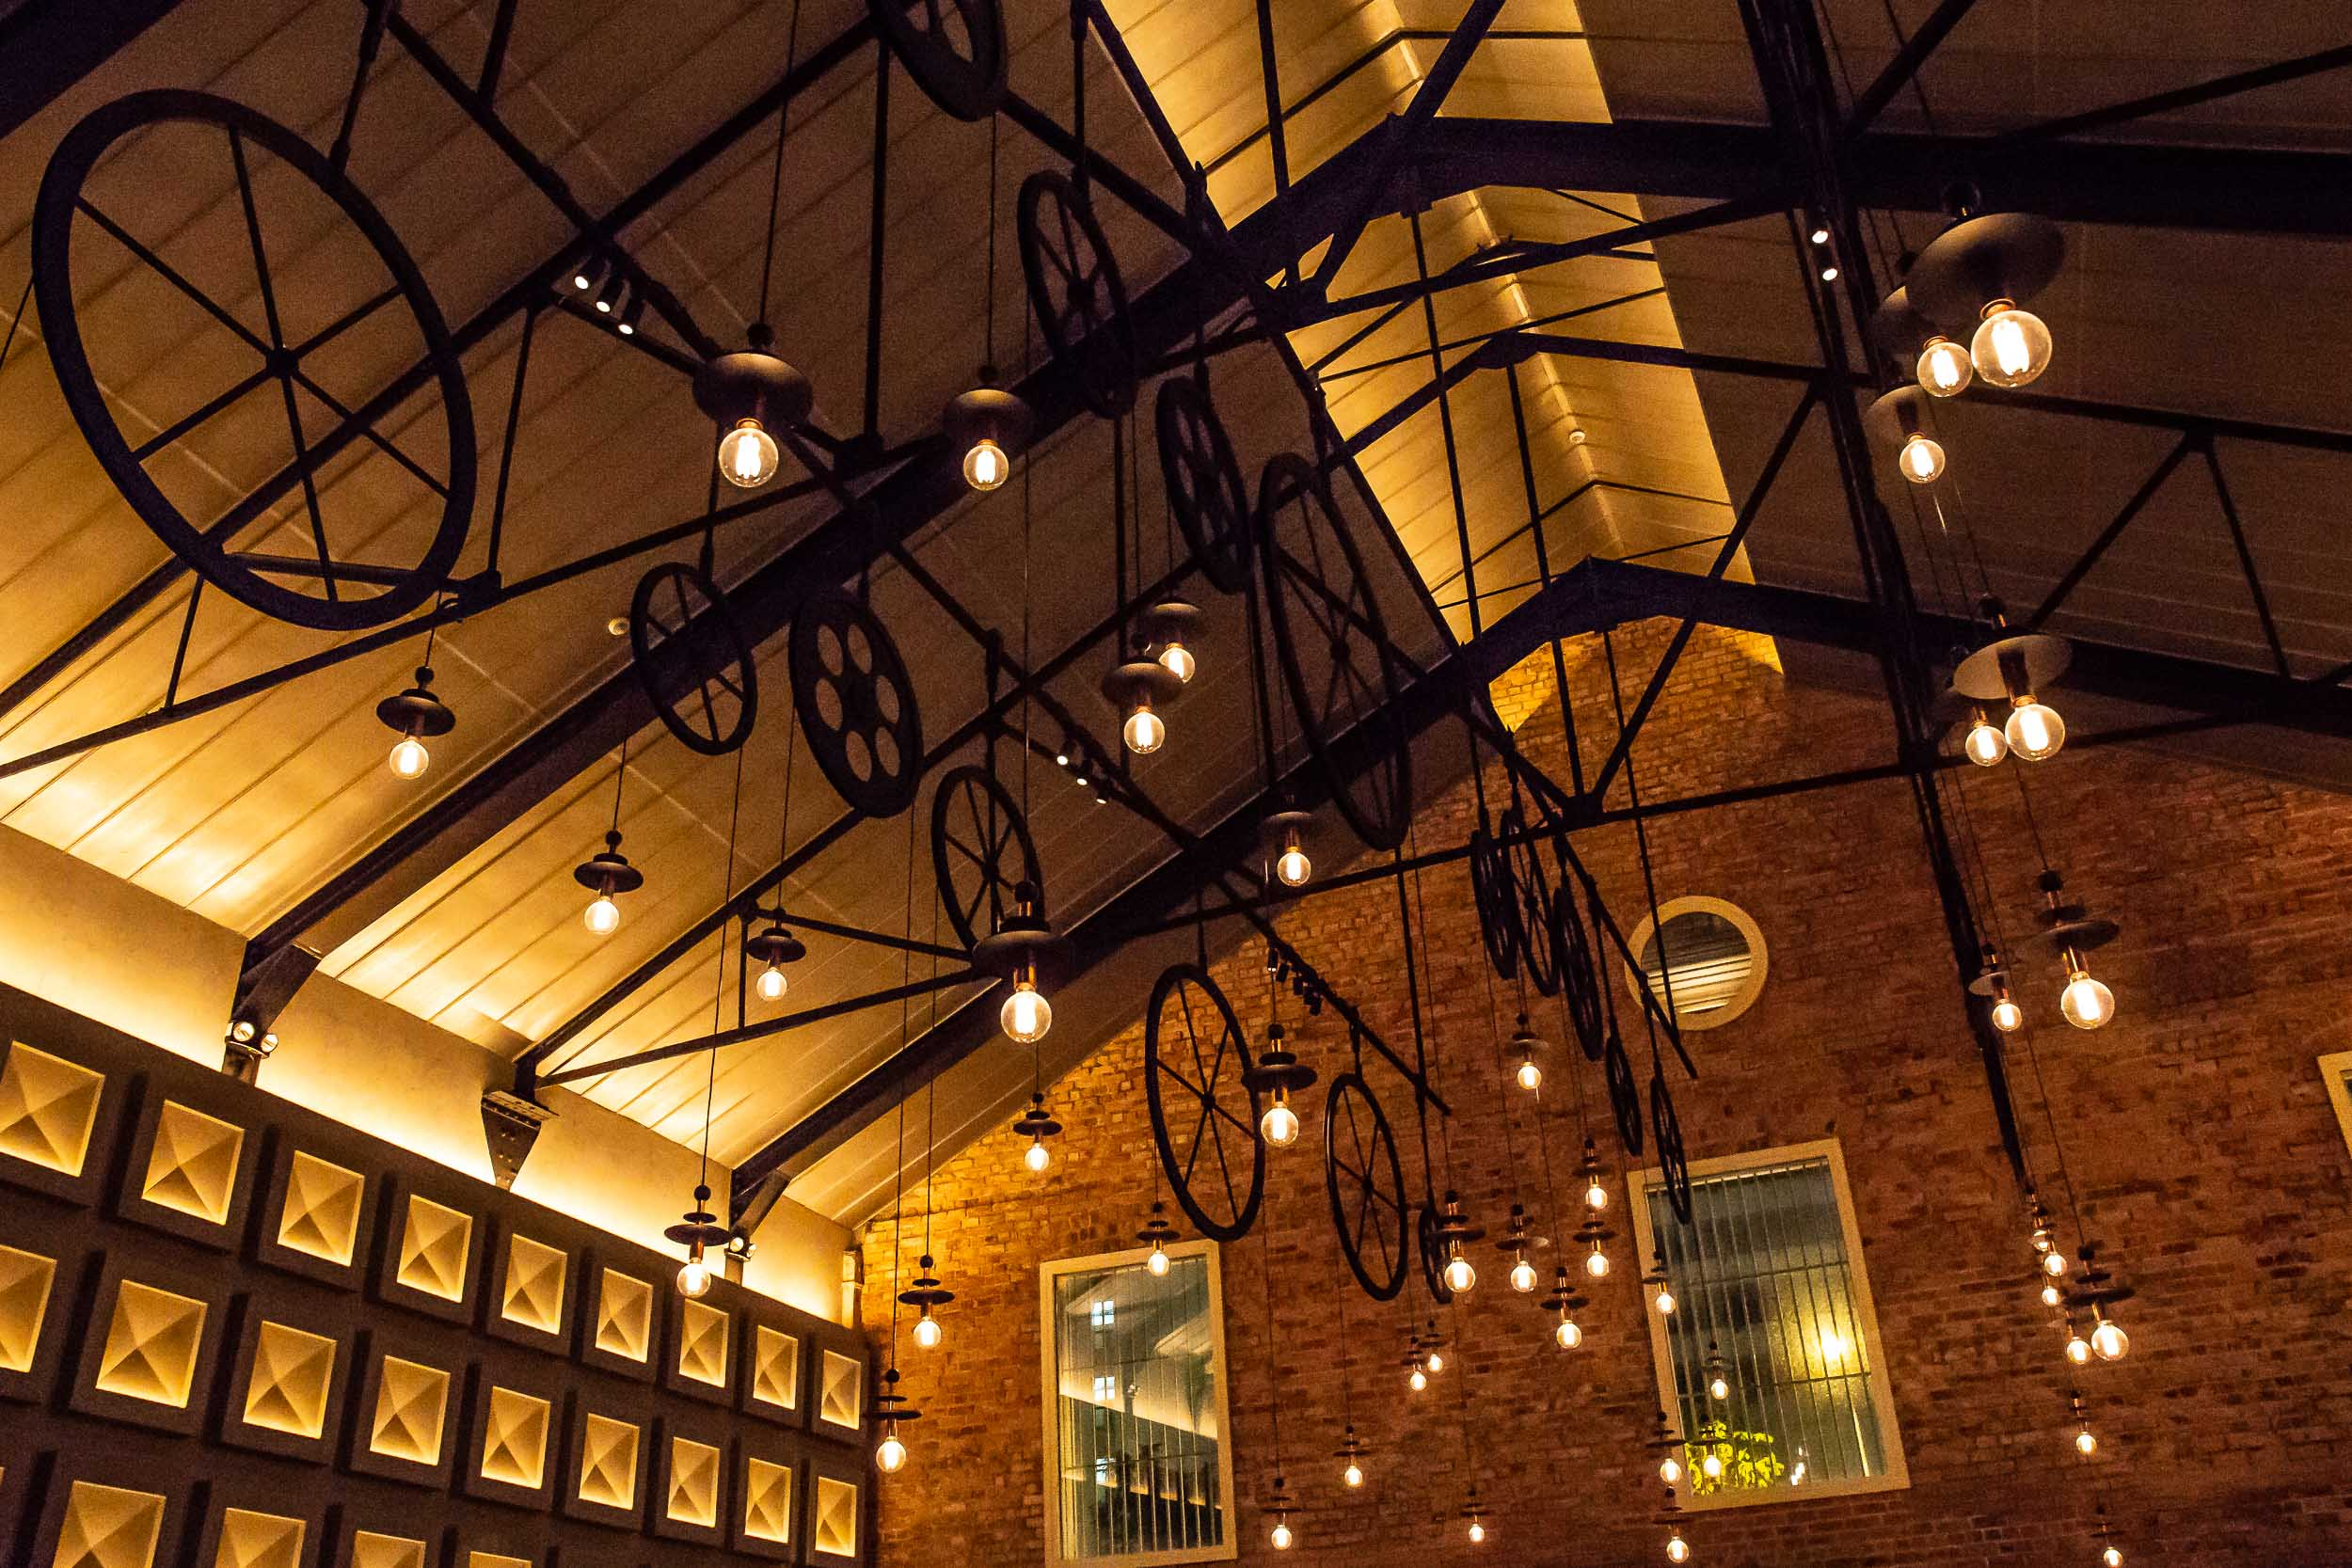 Industrial Inspired Lighting Hangs from the Vaulted Ceiling, The Warehouse Hotel, Singapore